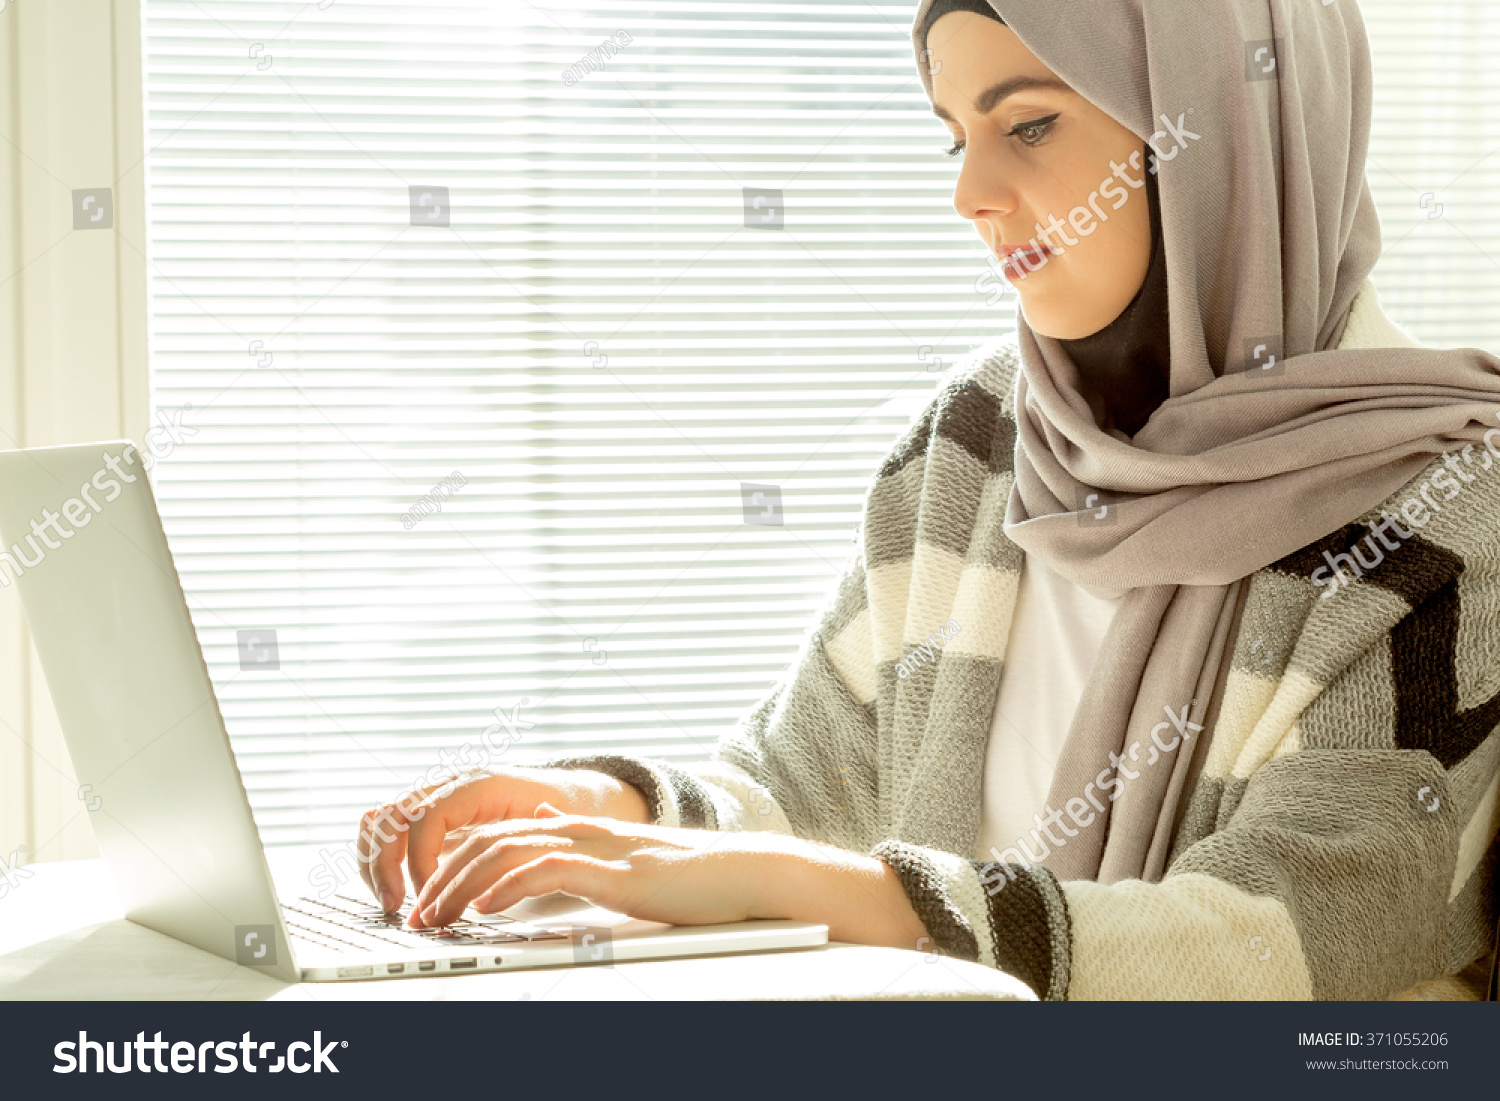 commerce muslim single women You will meet single, smart, beautiful men and women in your city muslim single women in usa - join one of best online dating sites for single people.